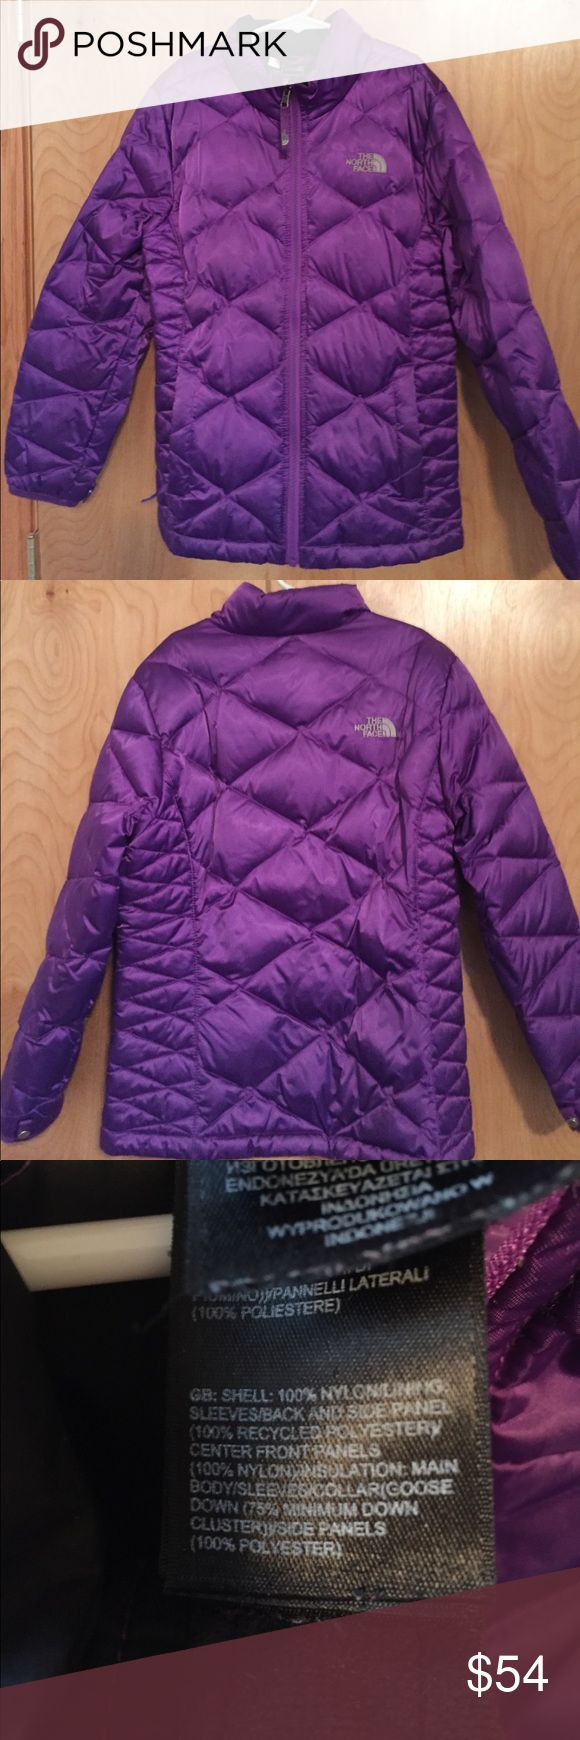 North Face big girls winter jacket size M 10-12 North Face big girls winter jacket in a gorgeous purple. Gently worn by 1 child. All zippers work. I'm trying to look for stains but I don't see any. Is possible there might be a stain that didn't come out. My daughters name is written on the inside. This was very warm in our snowy weather here in Montana The North Face Jackets & Coats Puffers